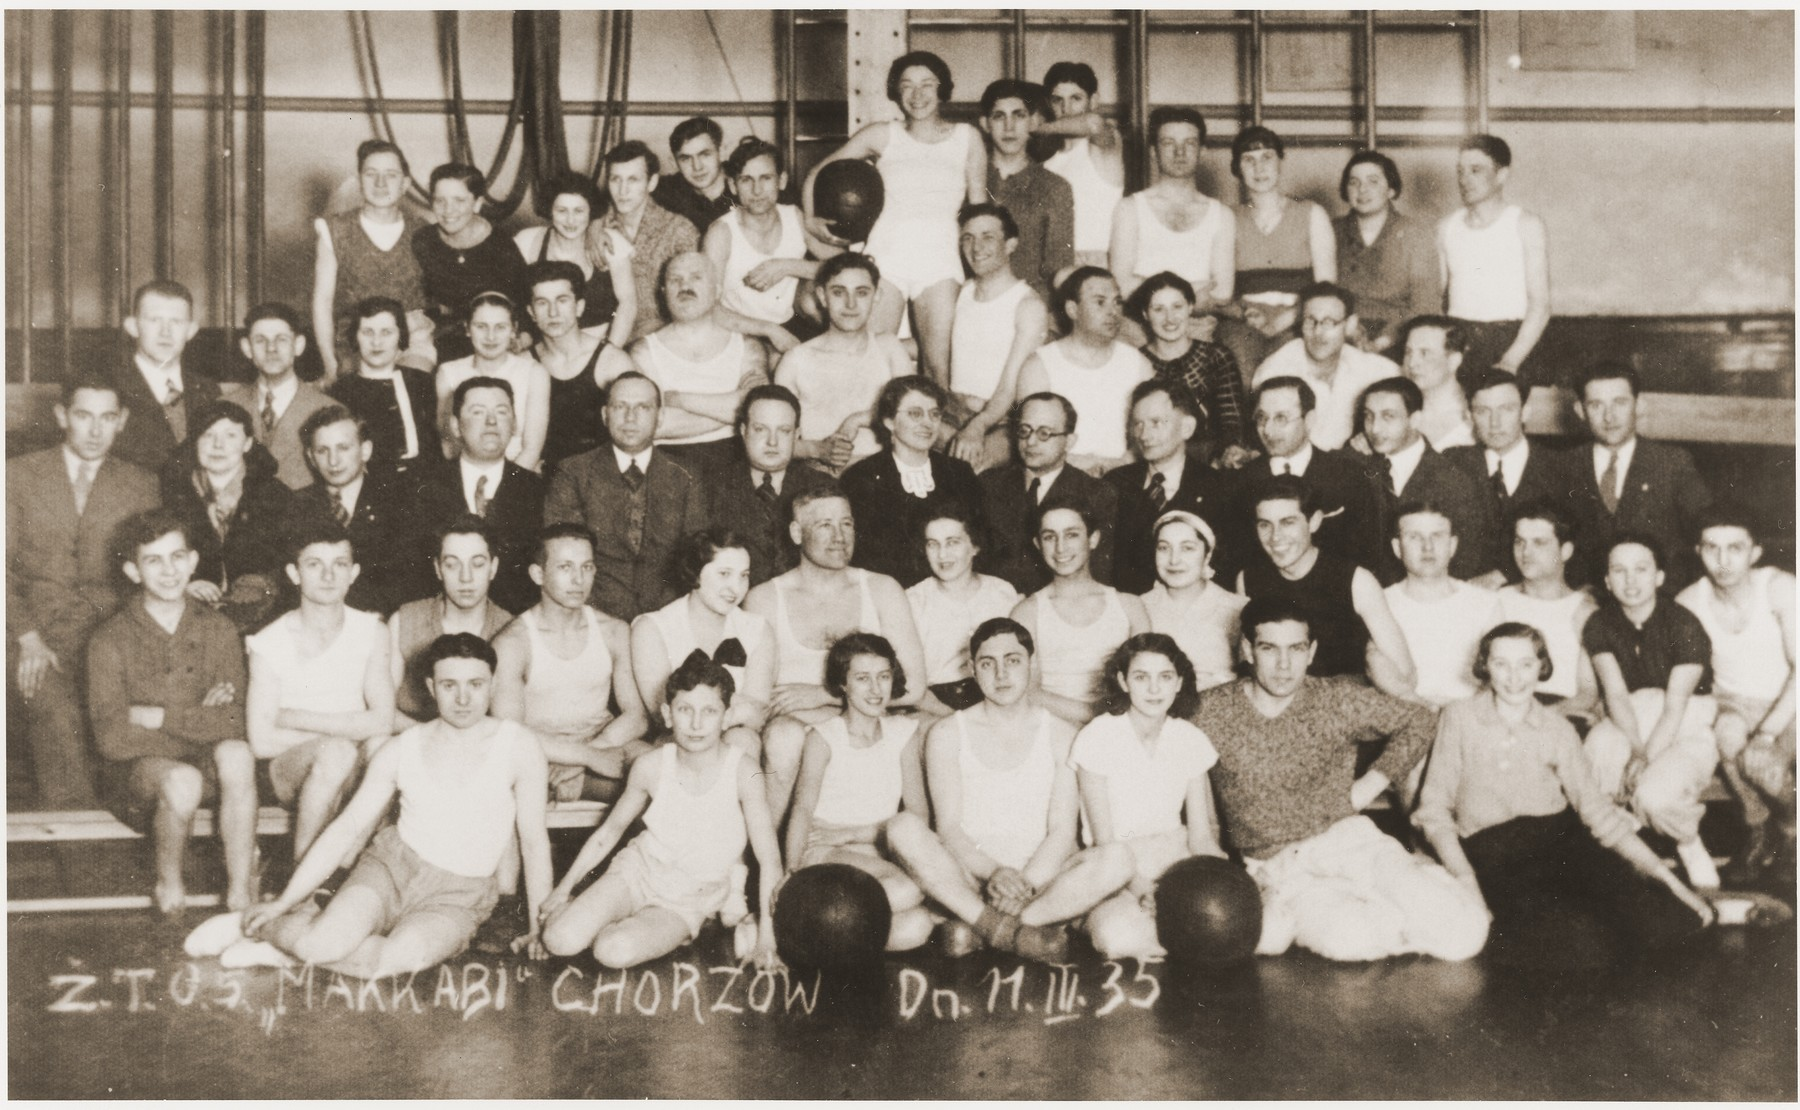 Group portrait of members of a Maccabi sports club in Chorzow, Poland.    Among those pictured is Henryk Wiener (first row, second from the left).